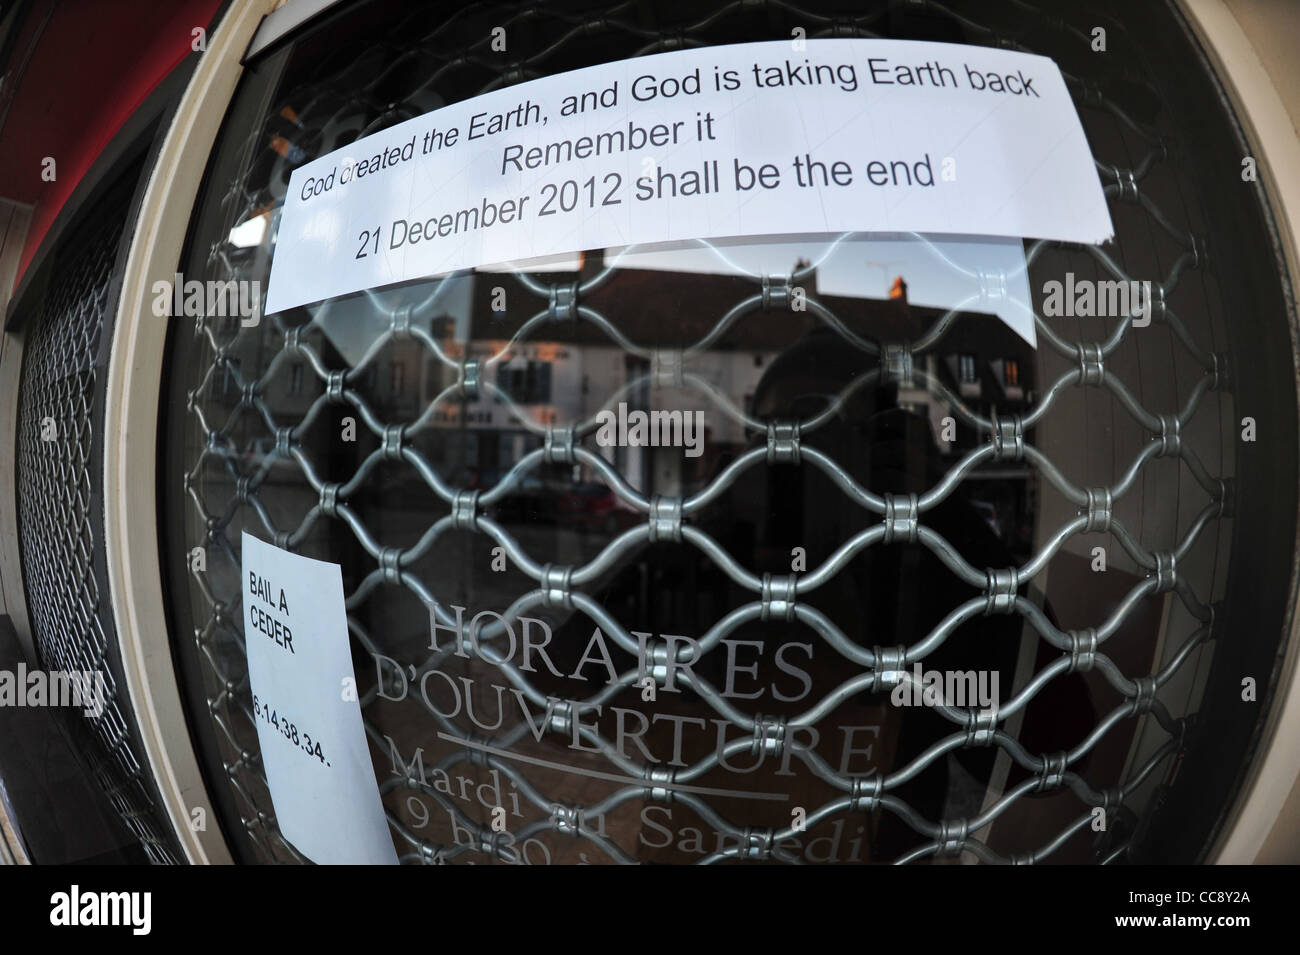 God created the Earth and God is taking Earth back 21 December 2012 shall be the end. Unwanted sticker, taken with - Stock Image